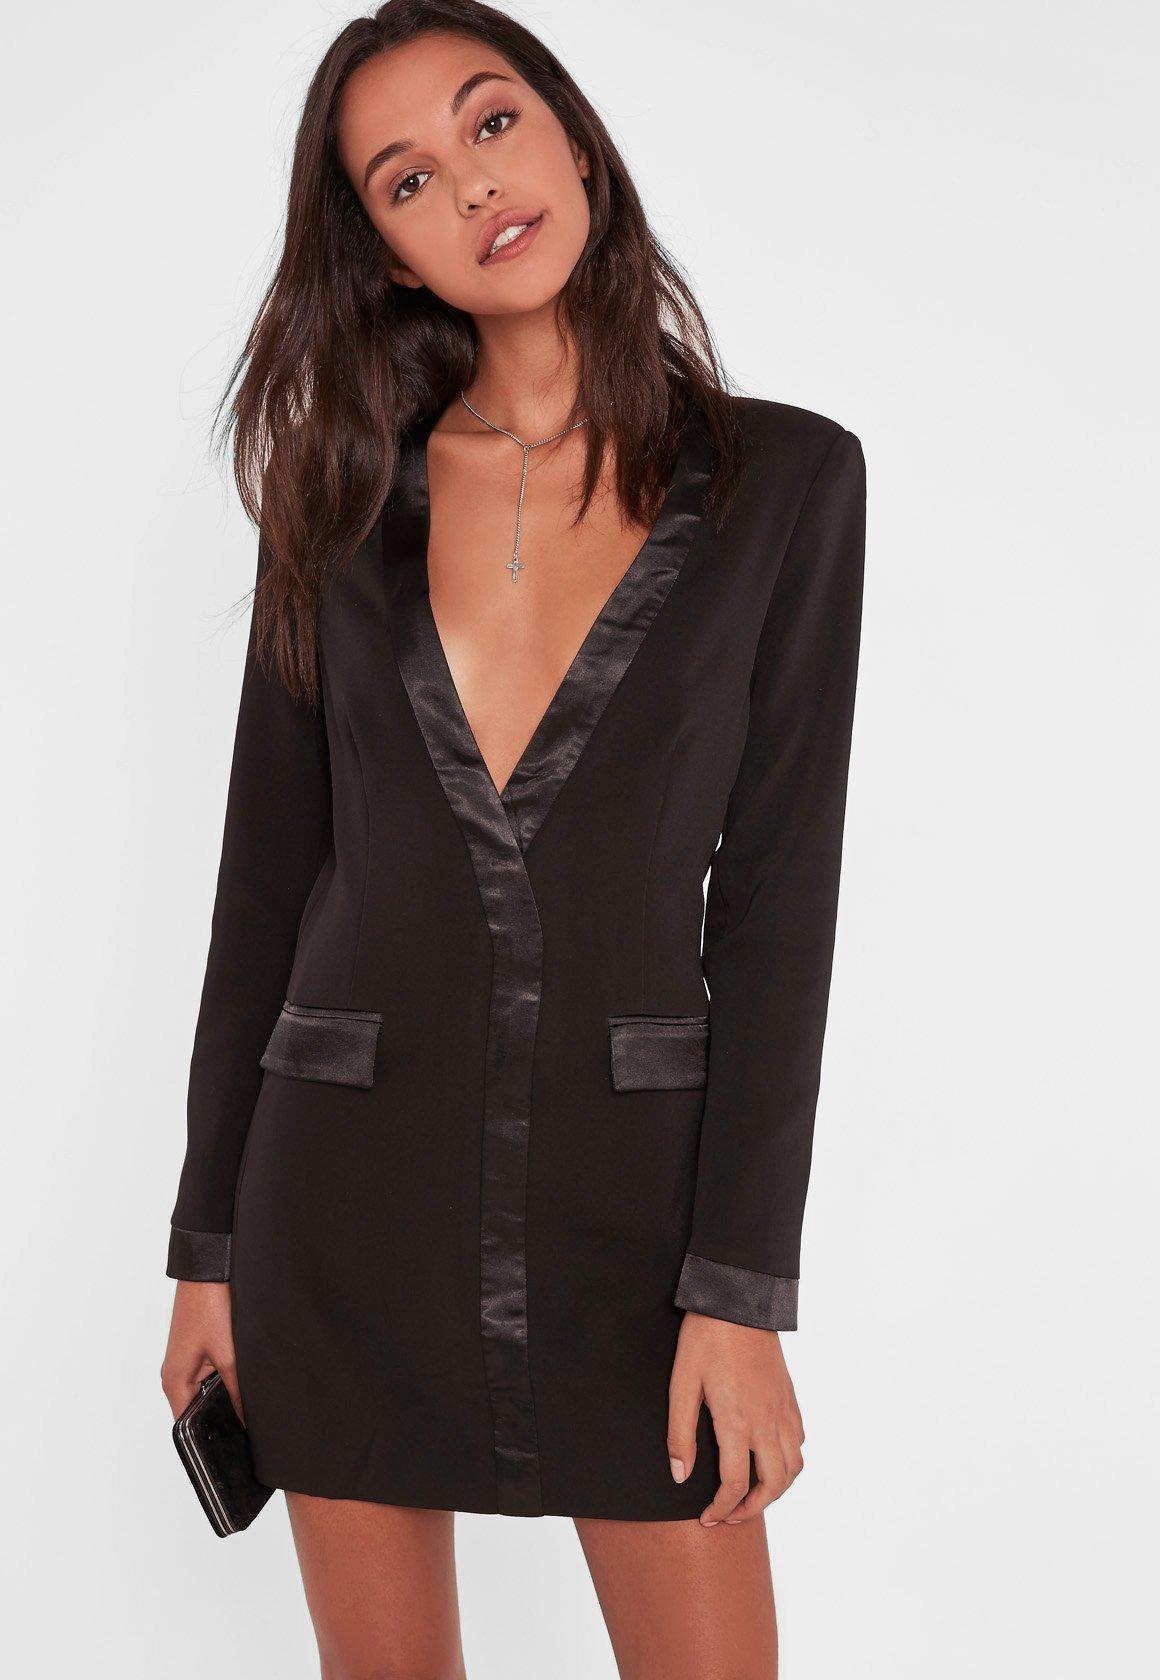 Blazer Dresses | Women's Tuxedo Dresses - Missguided